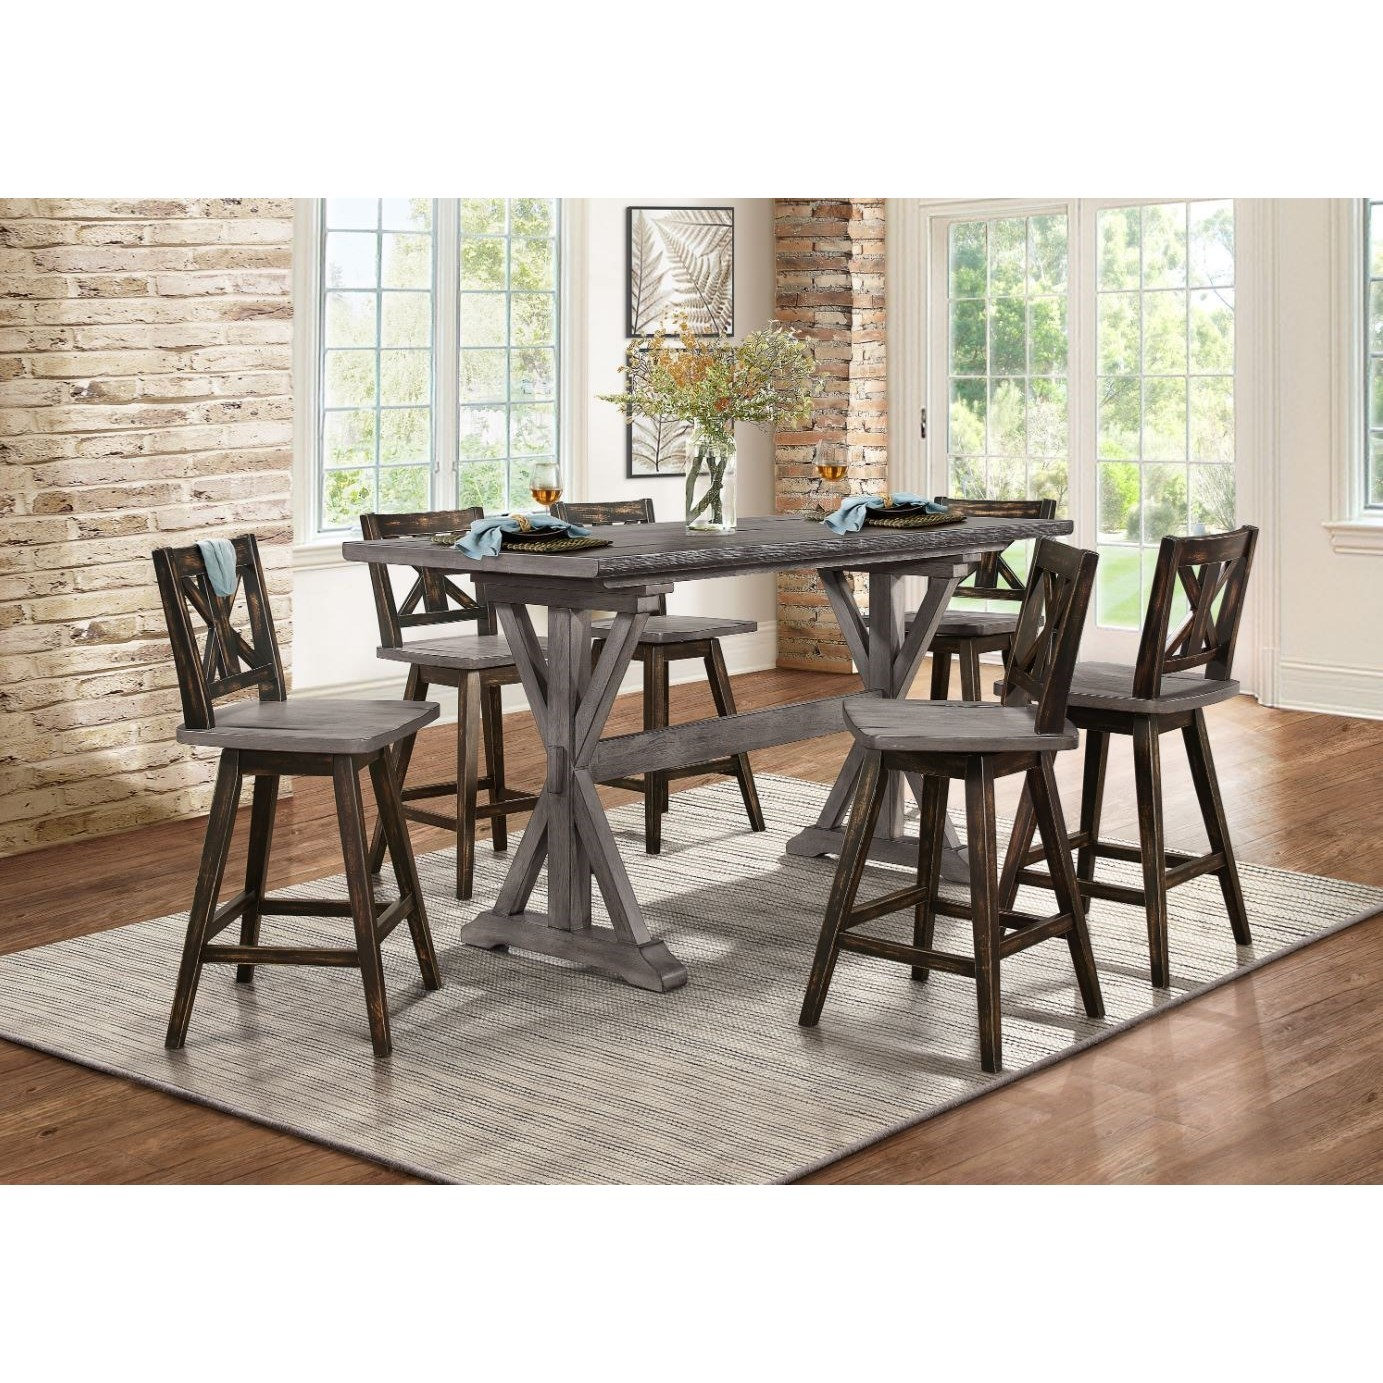 Amsonia 7-Piece Counter Height Dining Set by Homelegance at Rife's Home Furniture